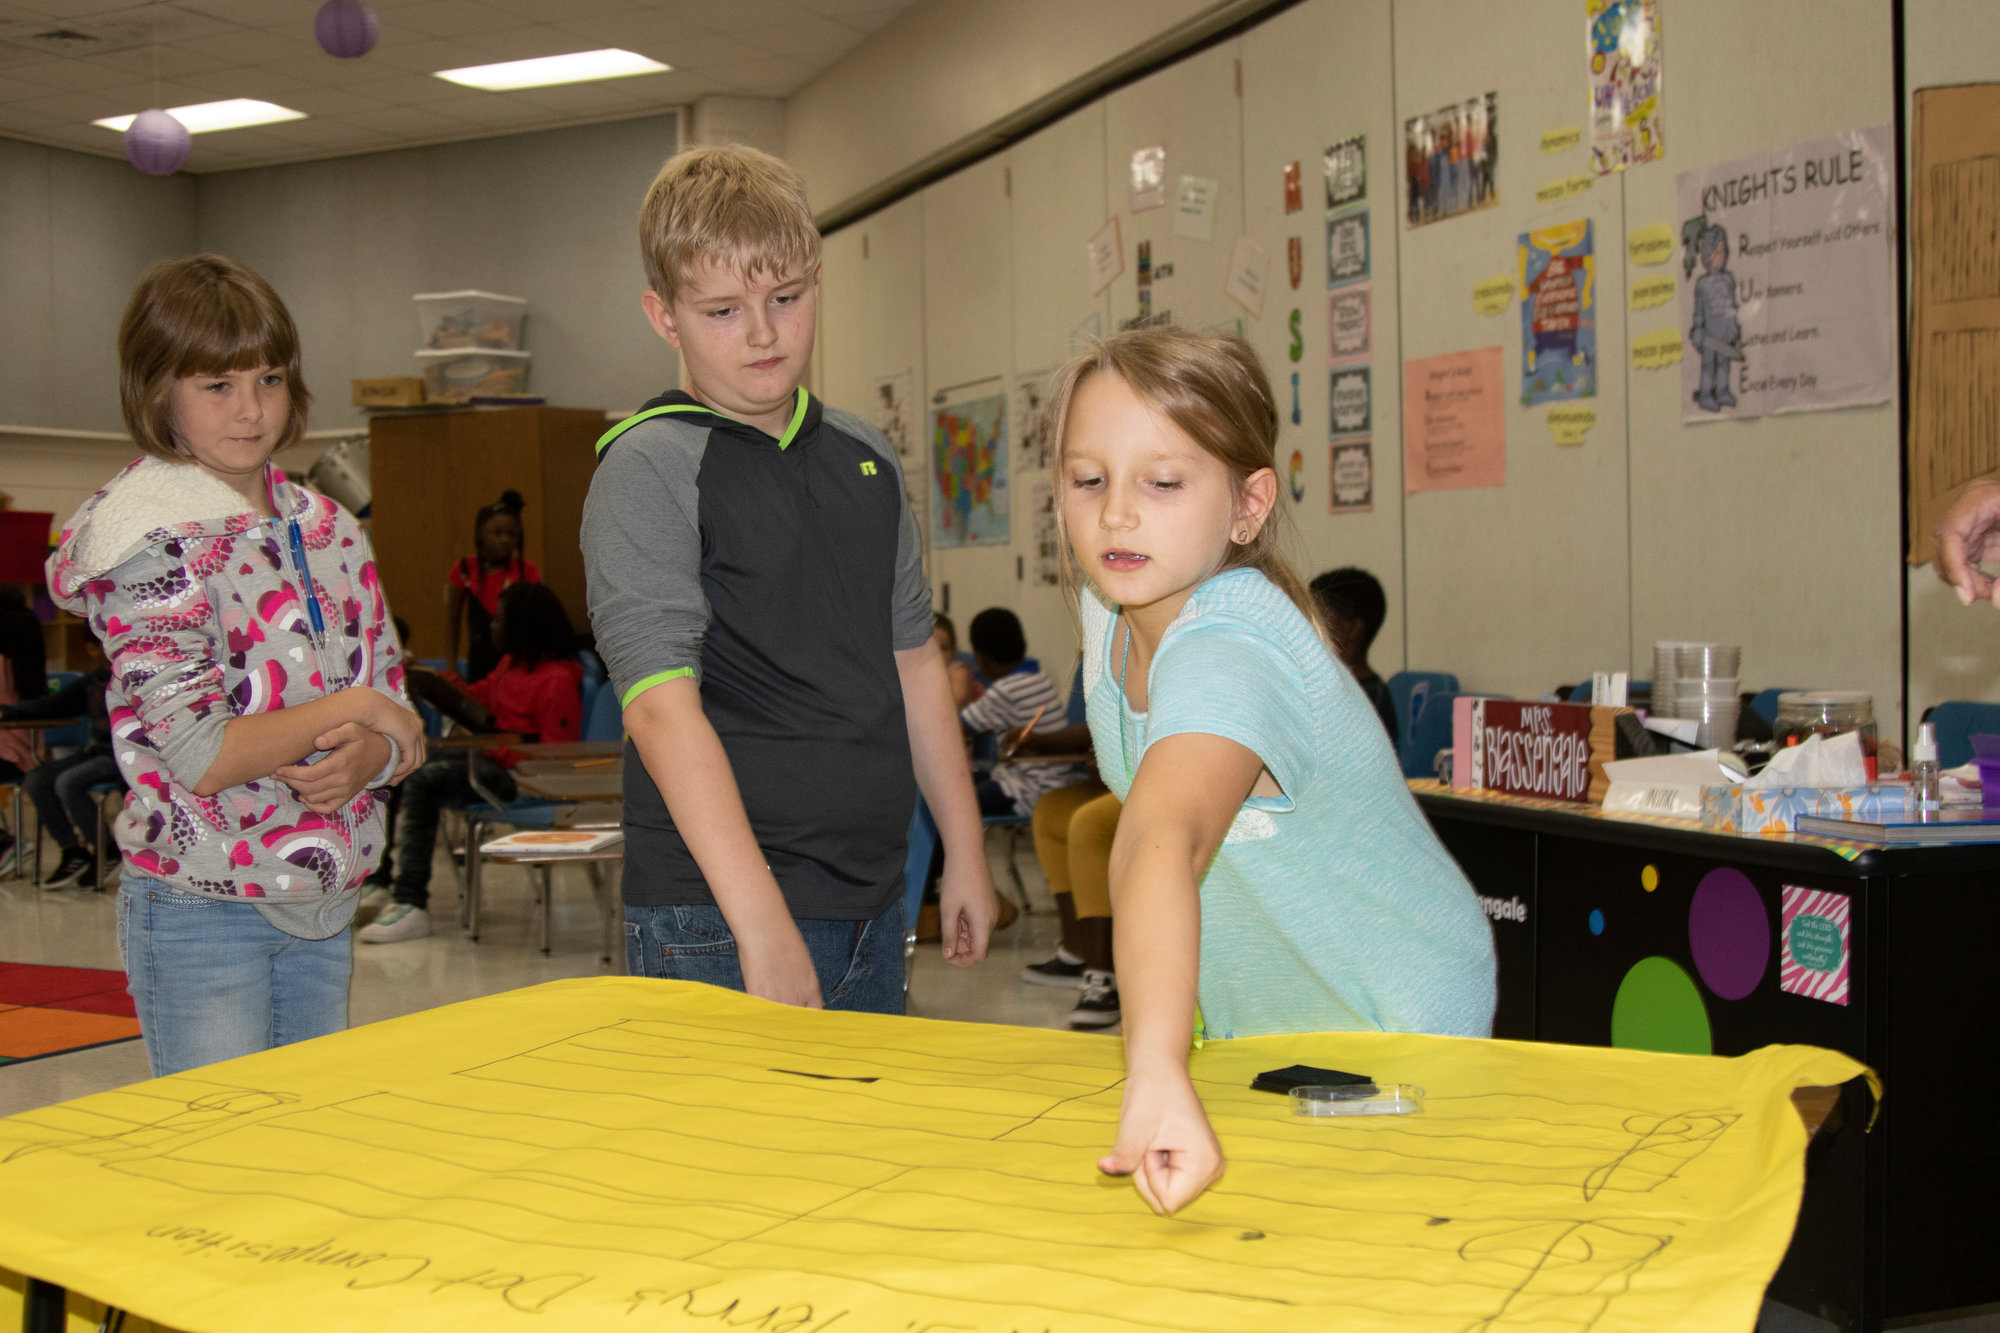 Kingsbury Elementary School students make their mark in music class with fingerprint dots.